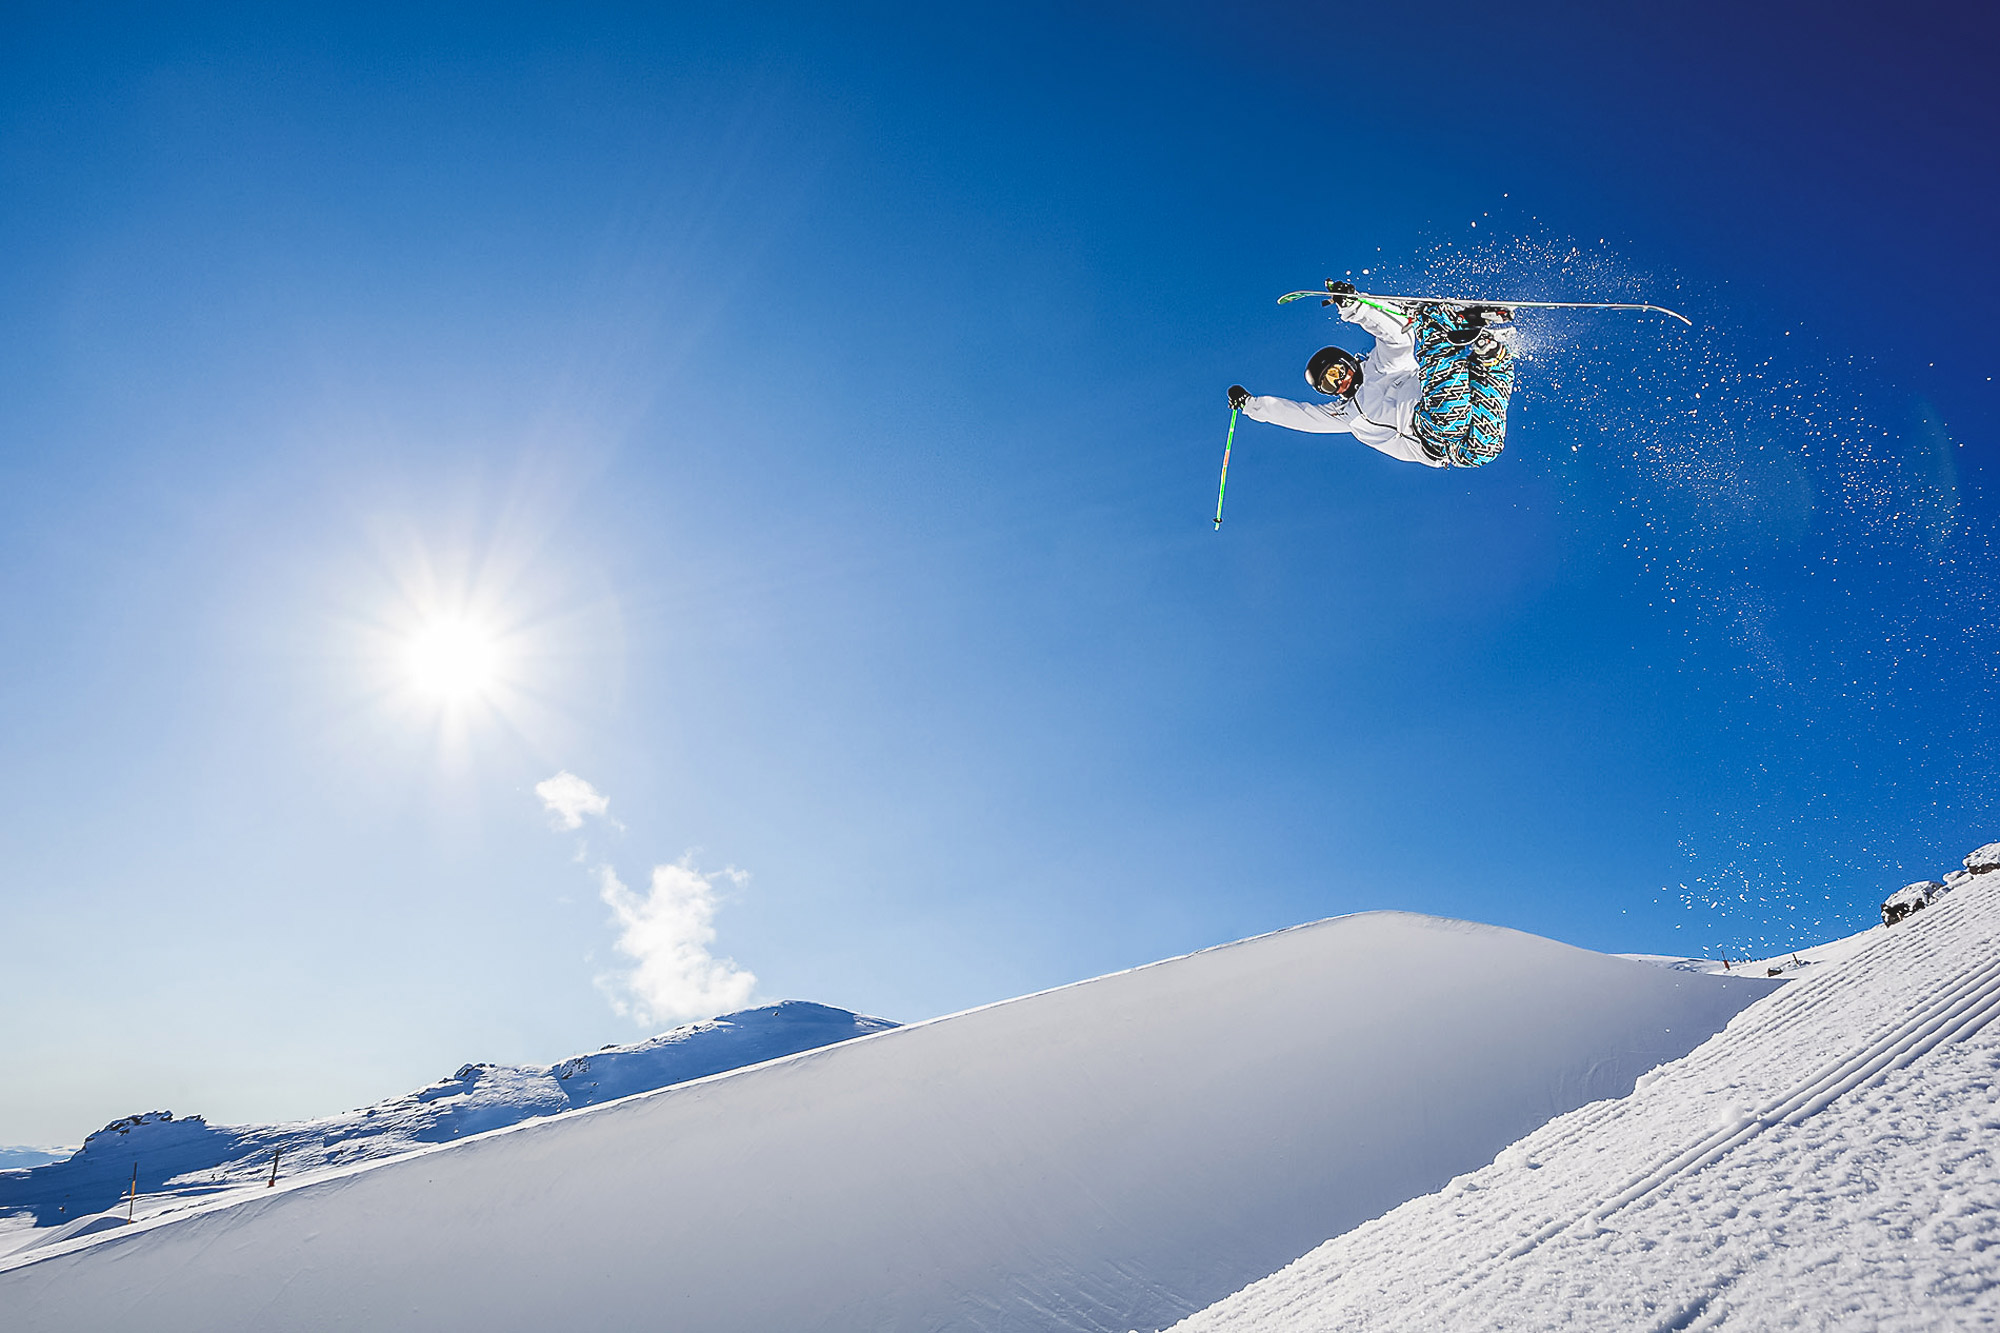 Freestyle skier Kentaro Tsuda jumping out of the halfpipe at Cardrona alpine ski resort